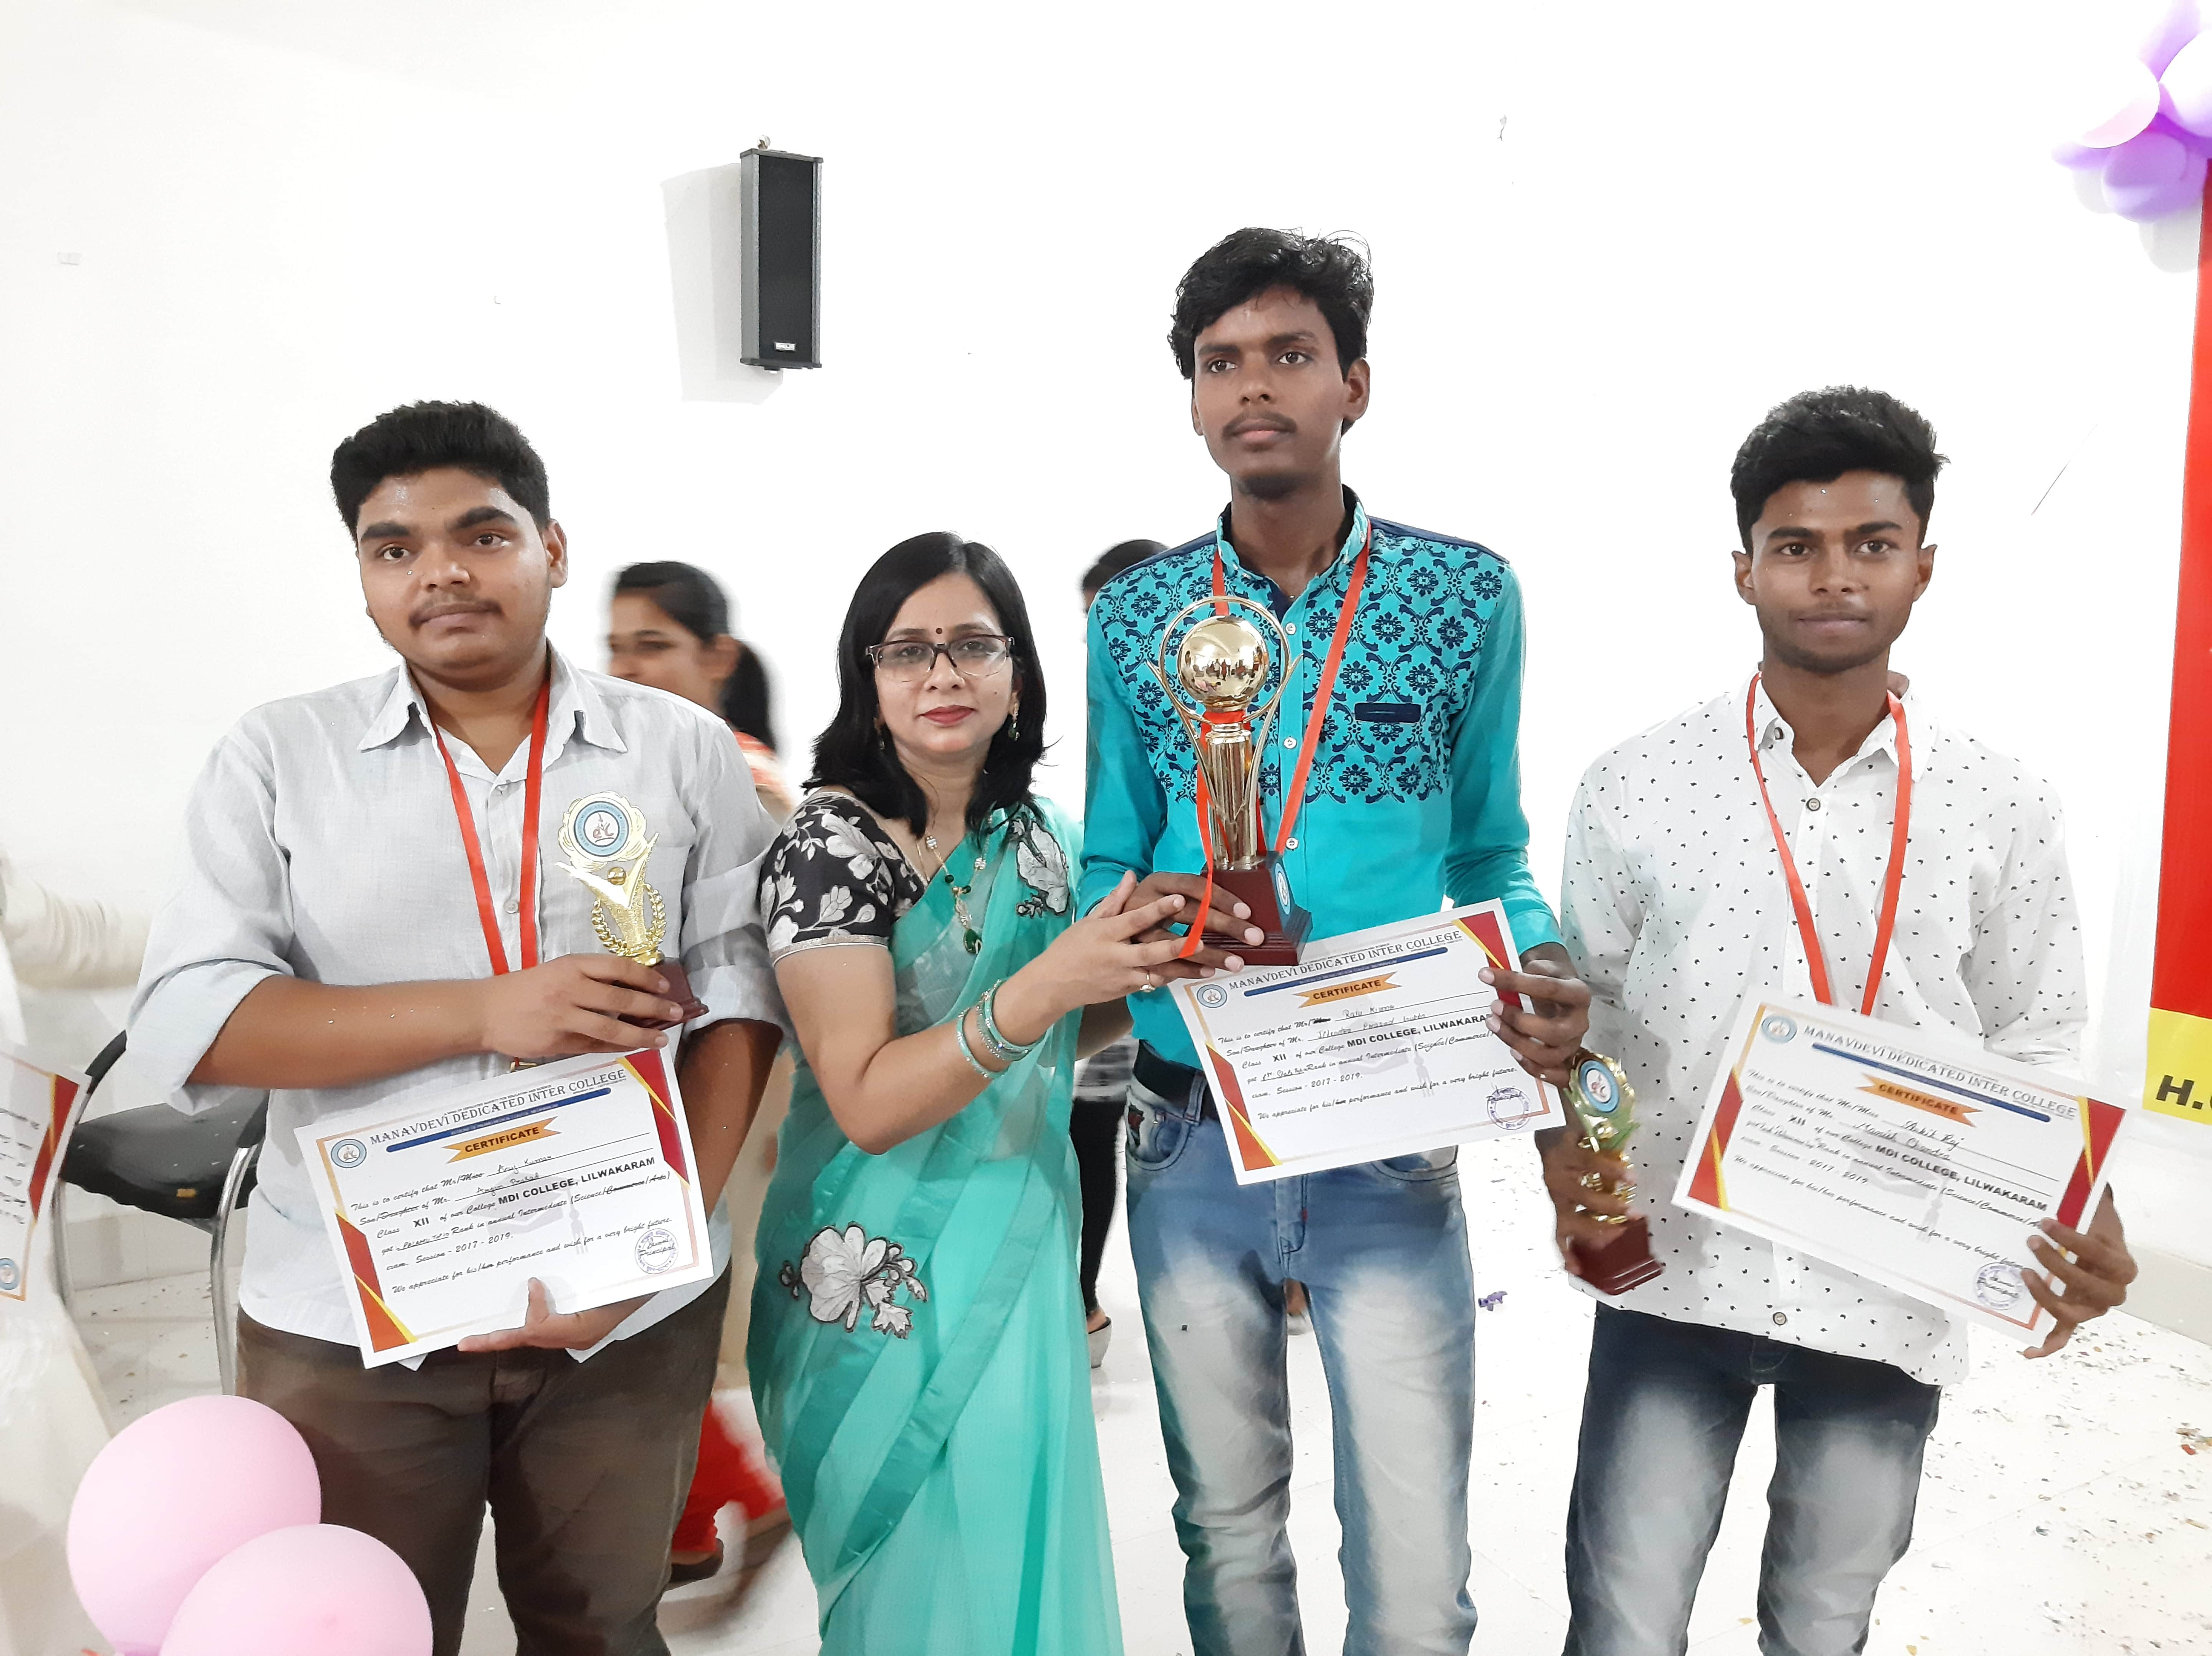 Raju Kumar, Anuj and Ankit (Toppers of the College)